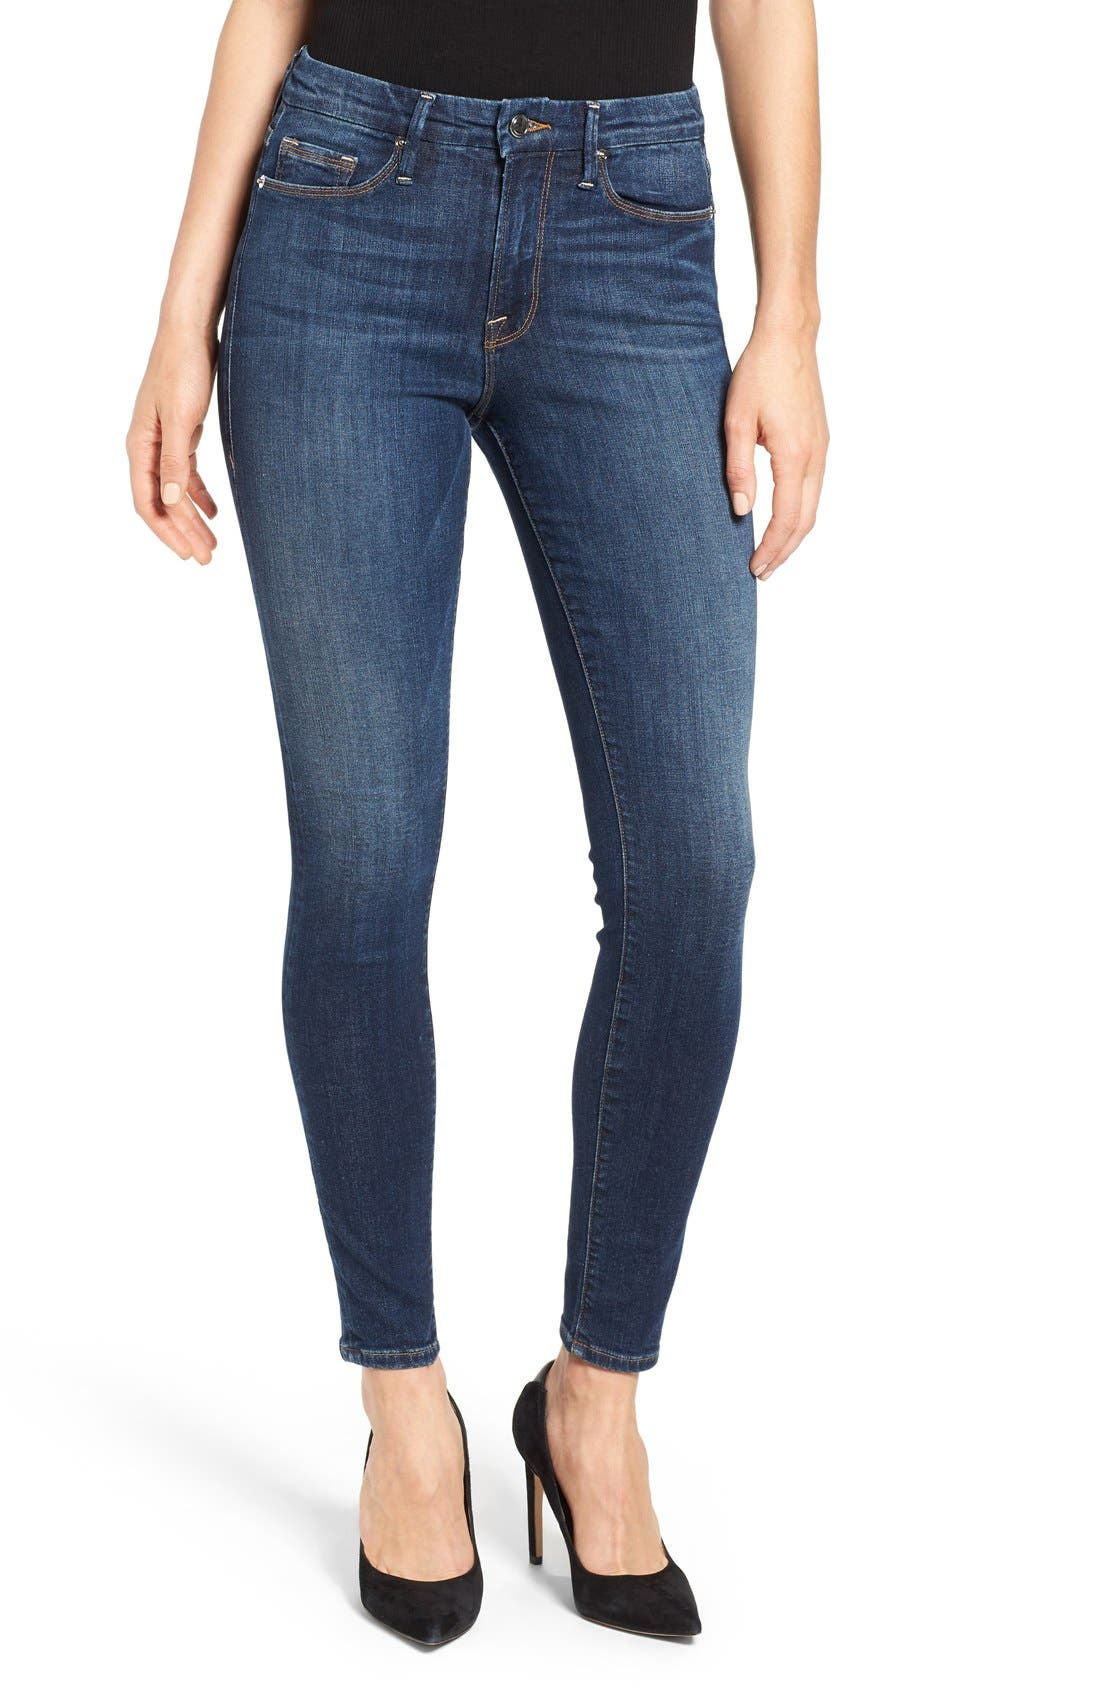 Main Image - Good American Good Legs High Rise Skinny Jeans (Blue 004) (Regular & Plus Size)